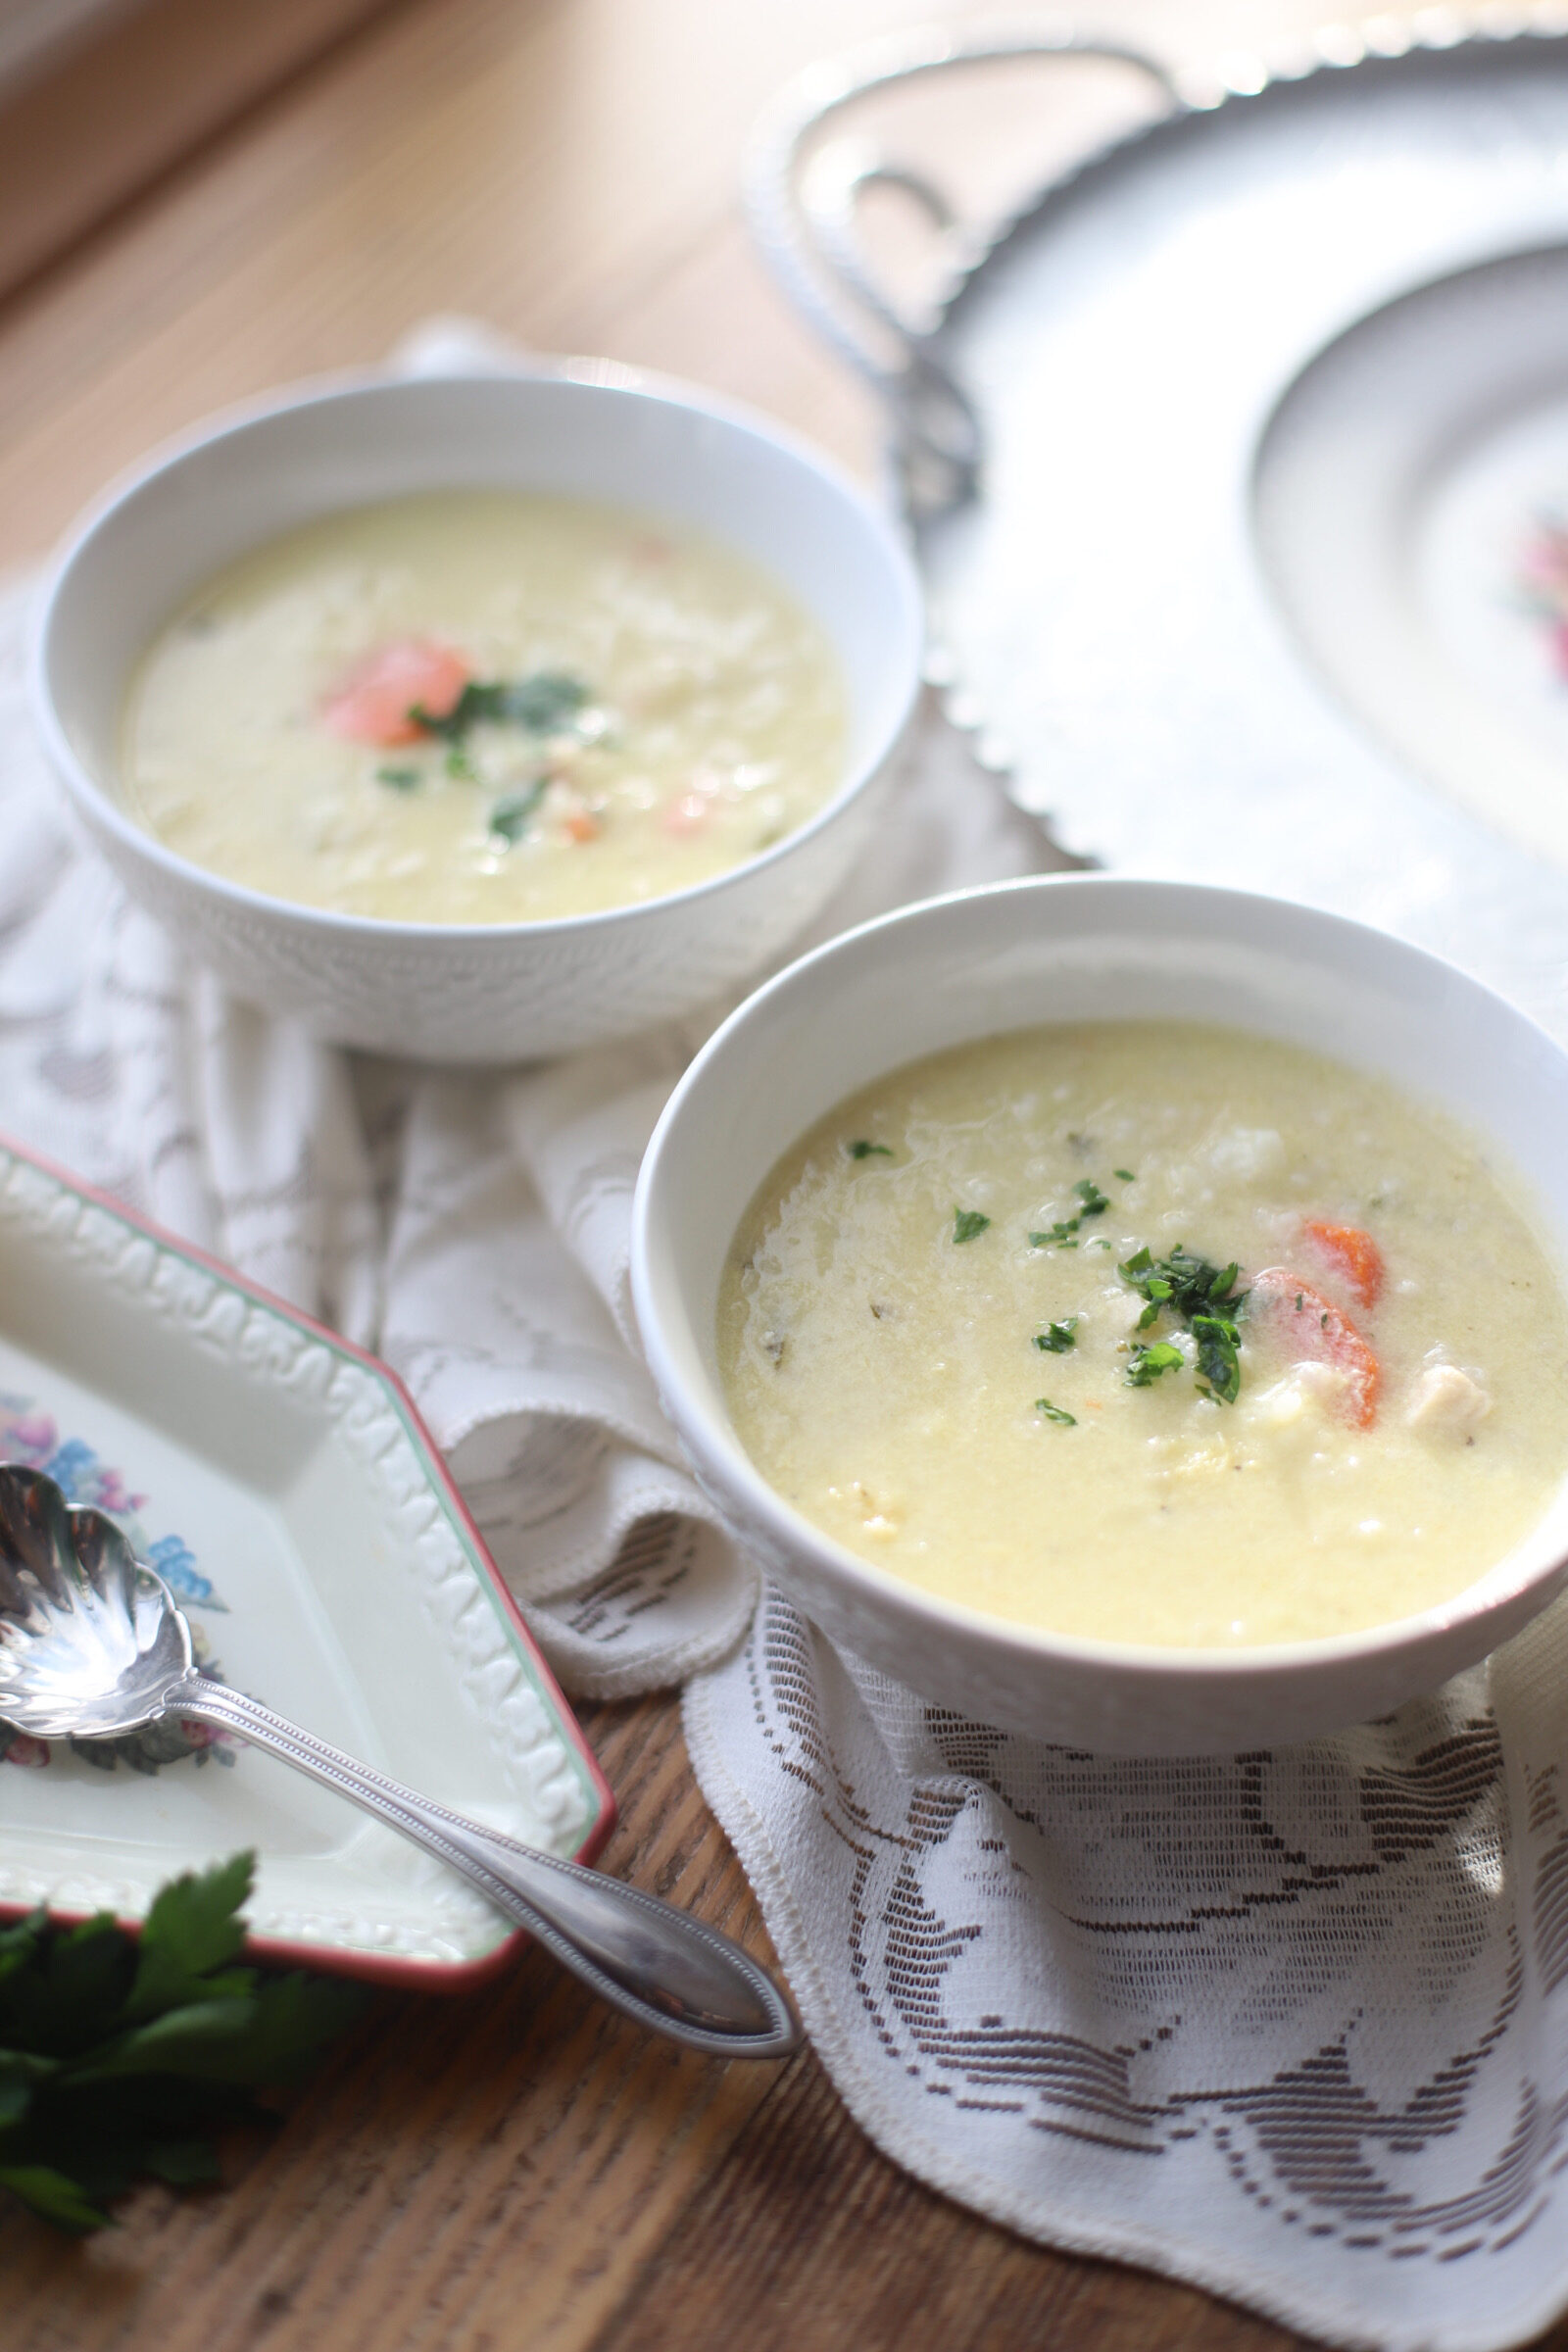 My Mom's Greek Lemon Chicken Soup - Avgolémono Soup